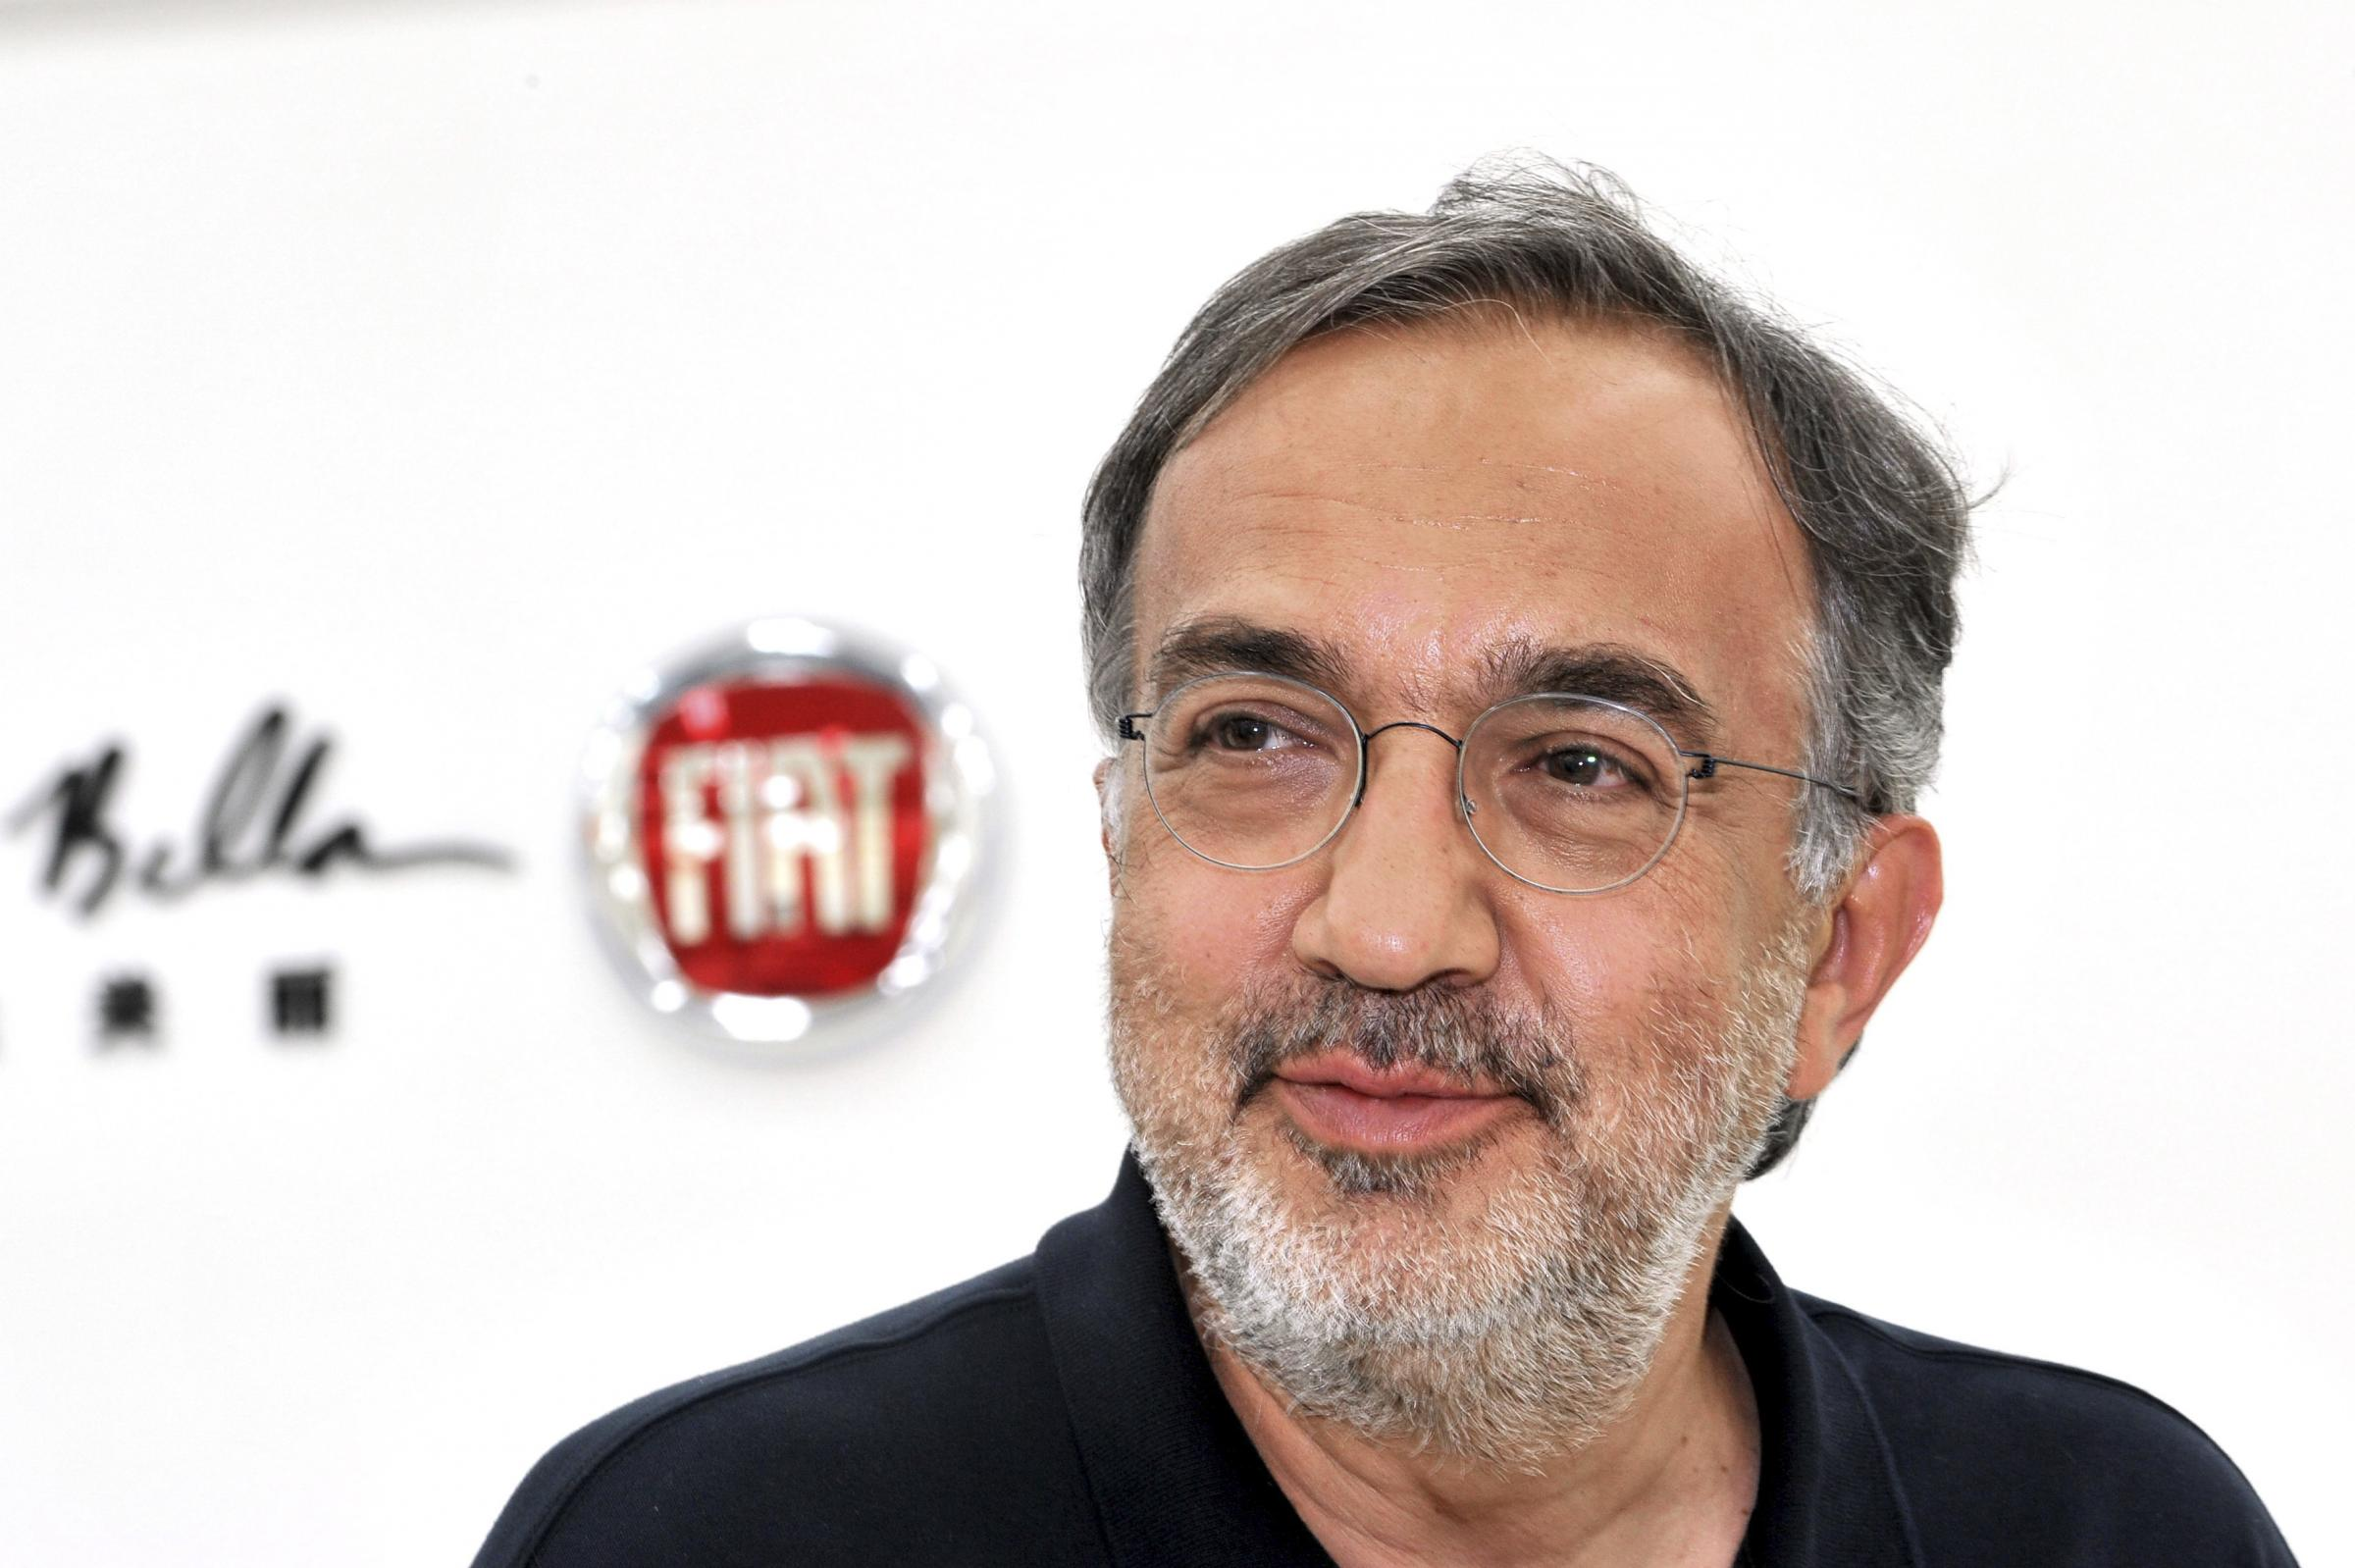 Sergio Marchionne, CEO of Fiat SpA